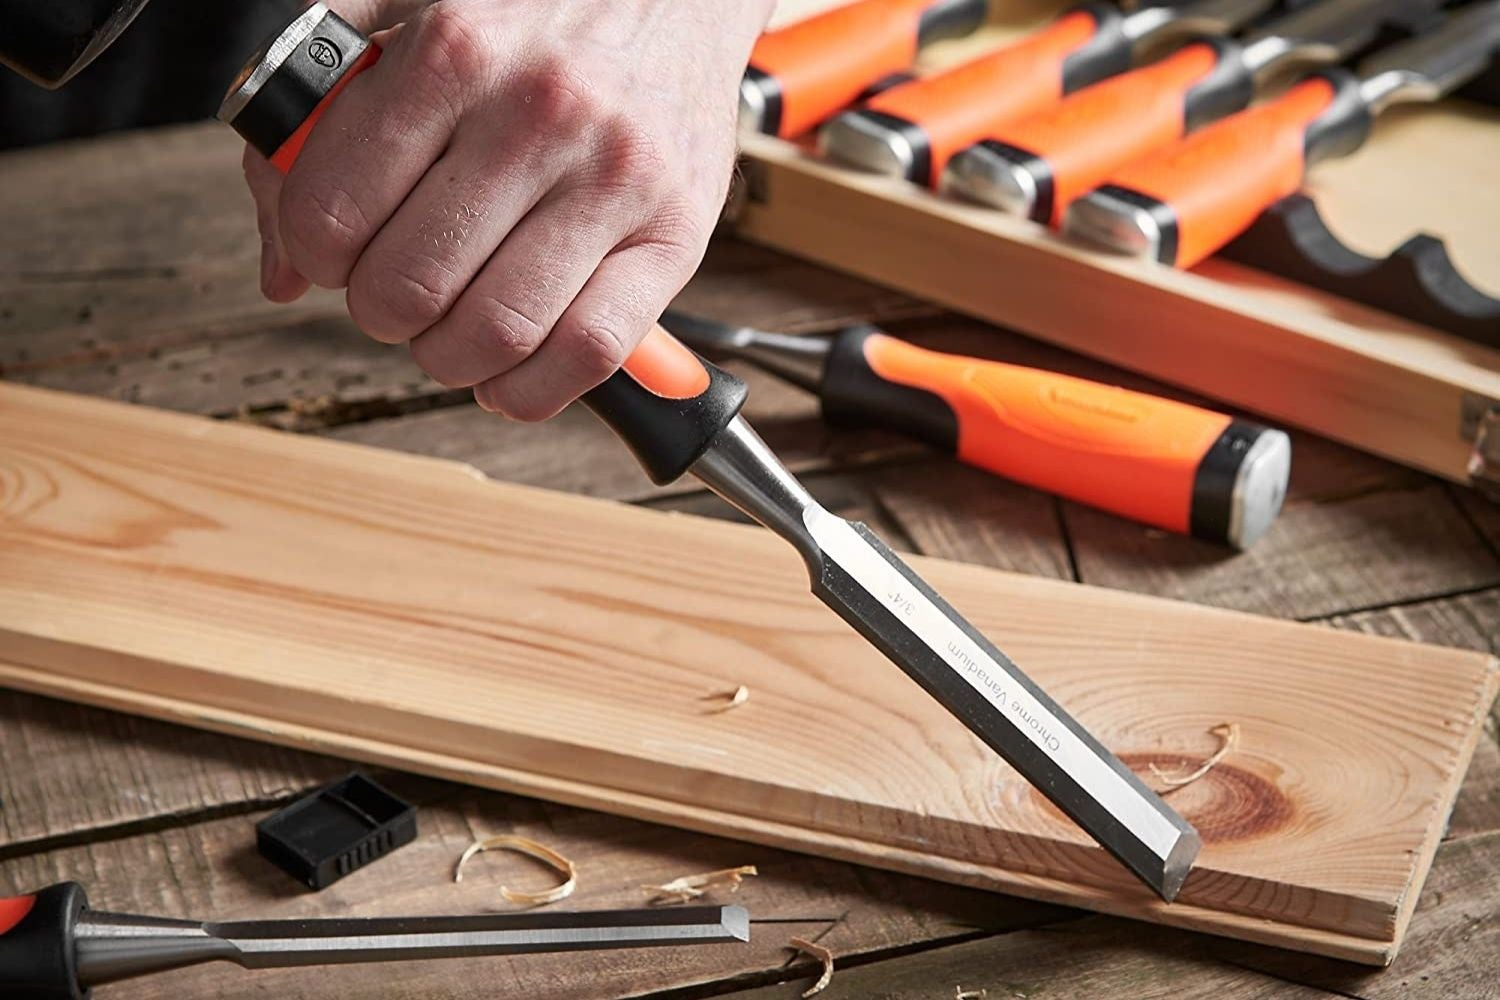 Follow This Great Article About Woodworking To Help You